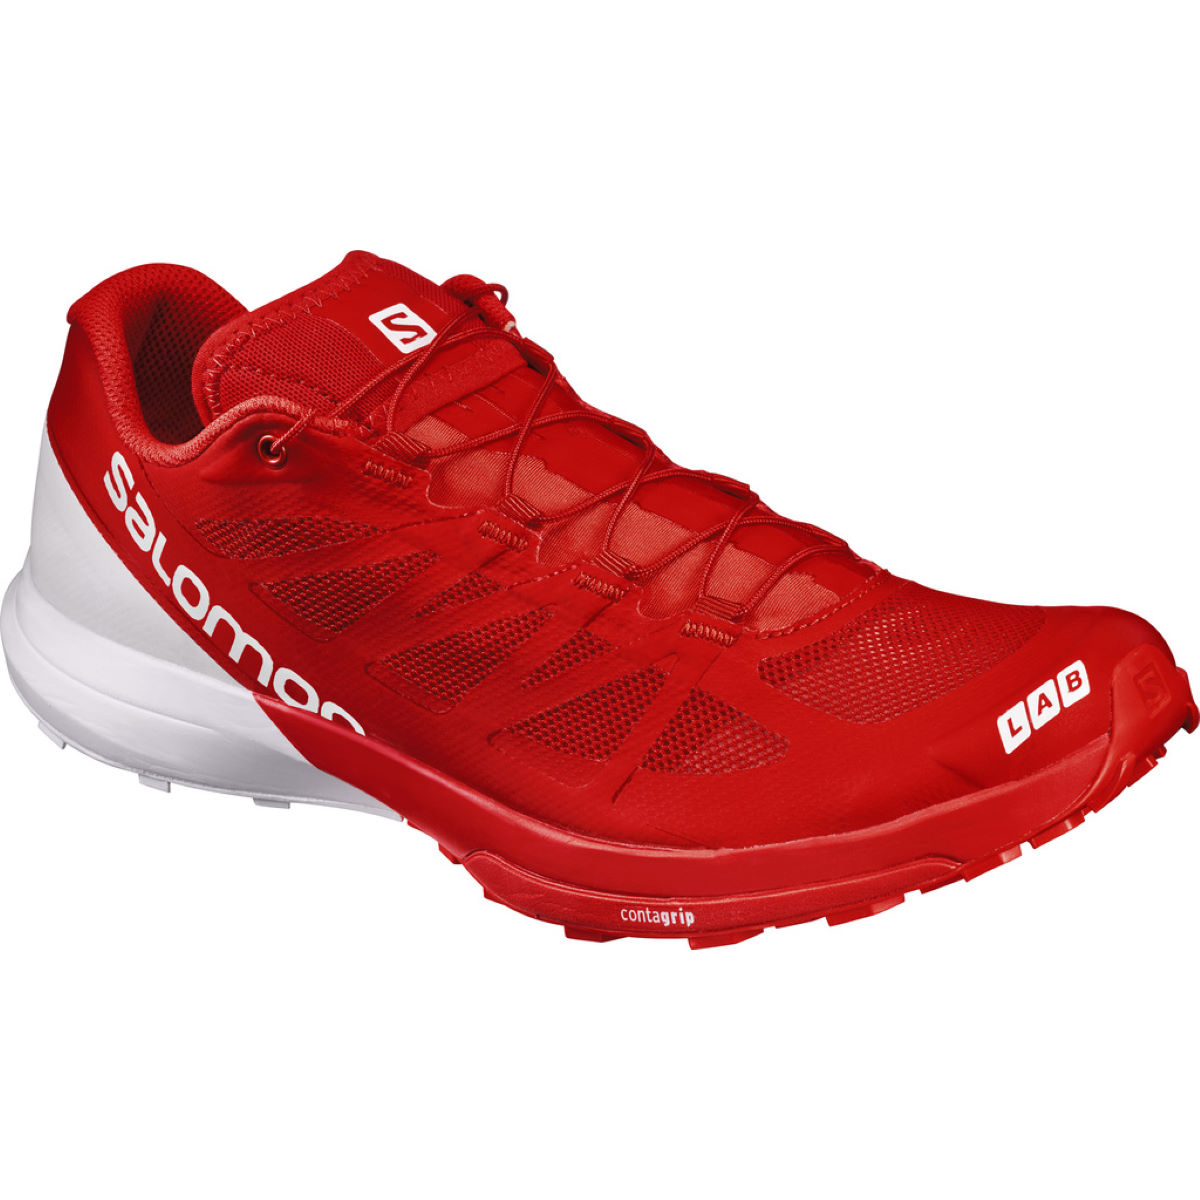 Chaussures Salomon S-Lab Sense 6 (unisexes, PE17) - 5 UK Red/White/White Chaussures de running trail